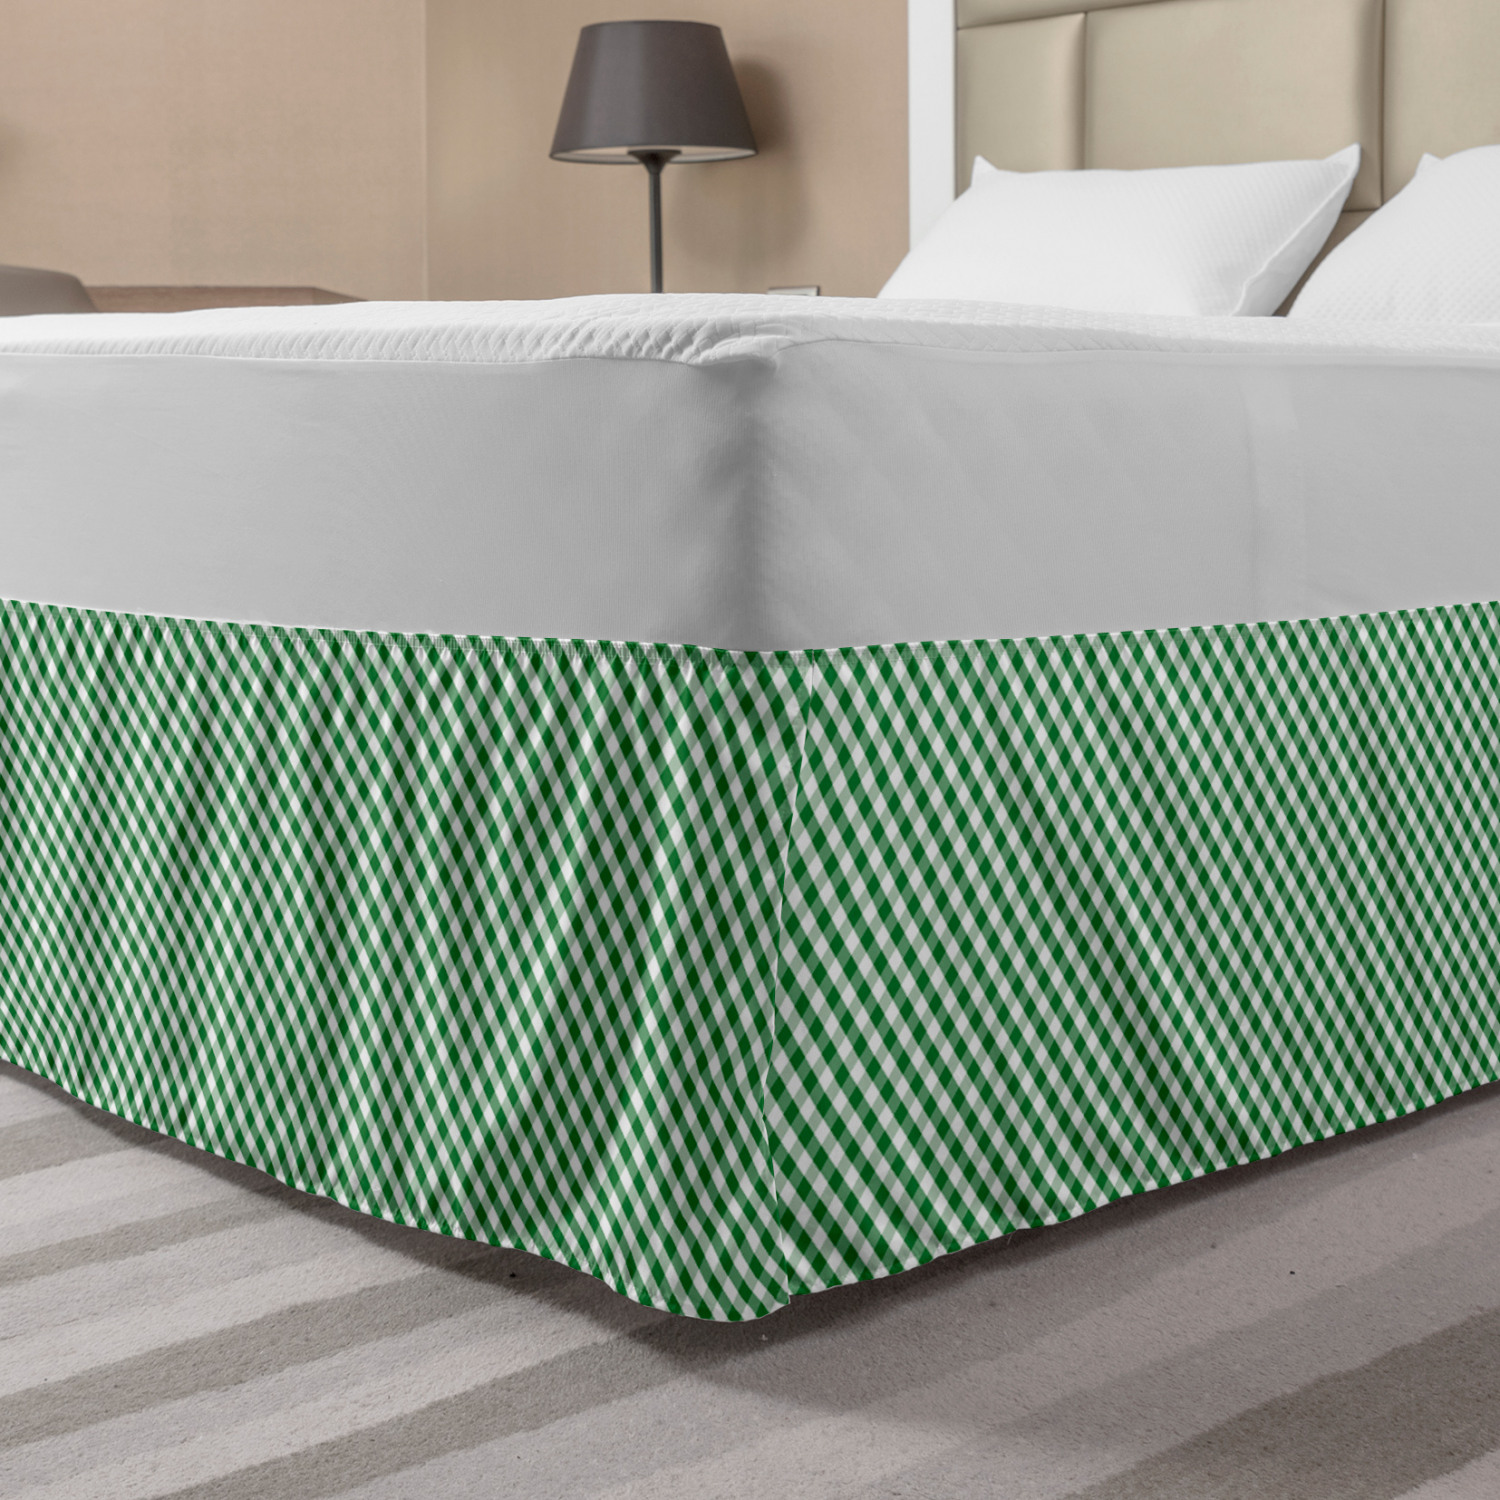 Abstract Green Bed Skirt Gingham Pattern Crossing Lines And Little Squares Elastic Bedskirt Dust Ruffle Wrap Around For Bedding Decor 4 Sizes Forest Green Fern Green By Ambesonne Walmart Com Walmart Com